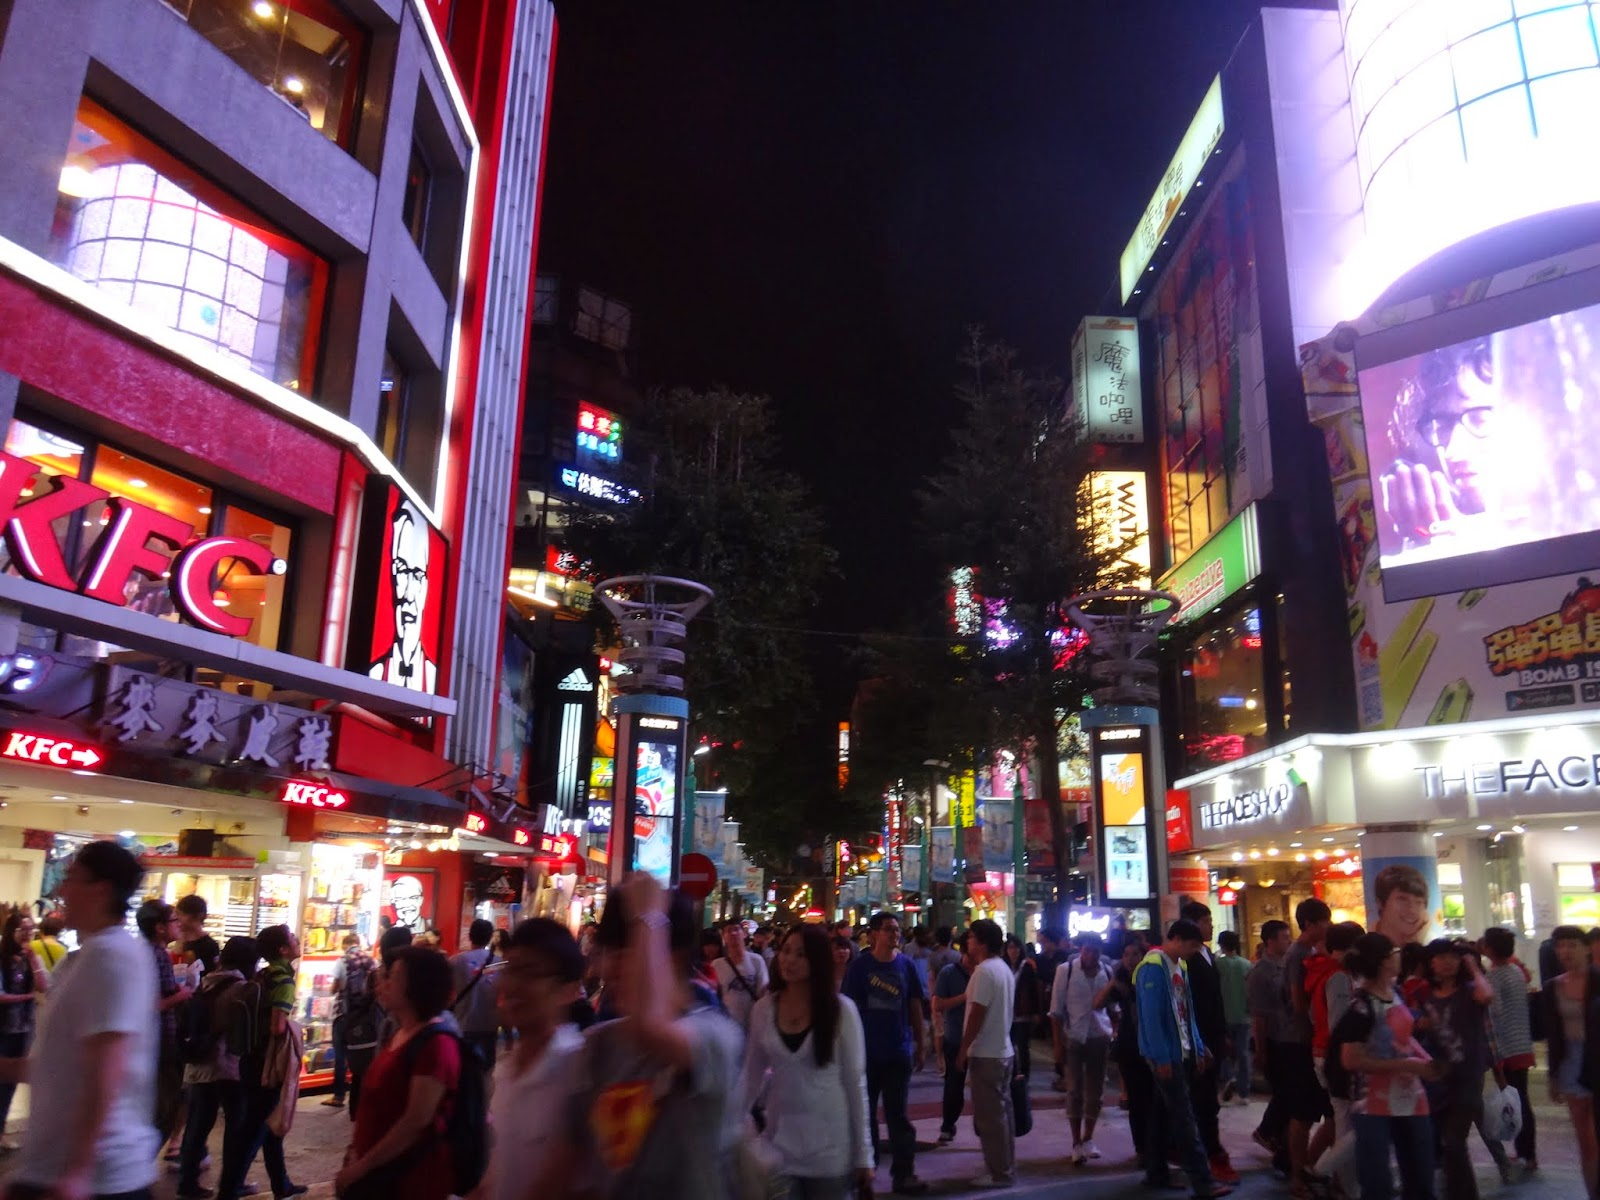 Crowded Ximending at night in Taipei, Taiwan